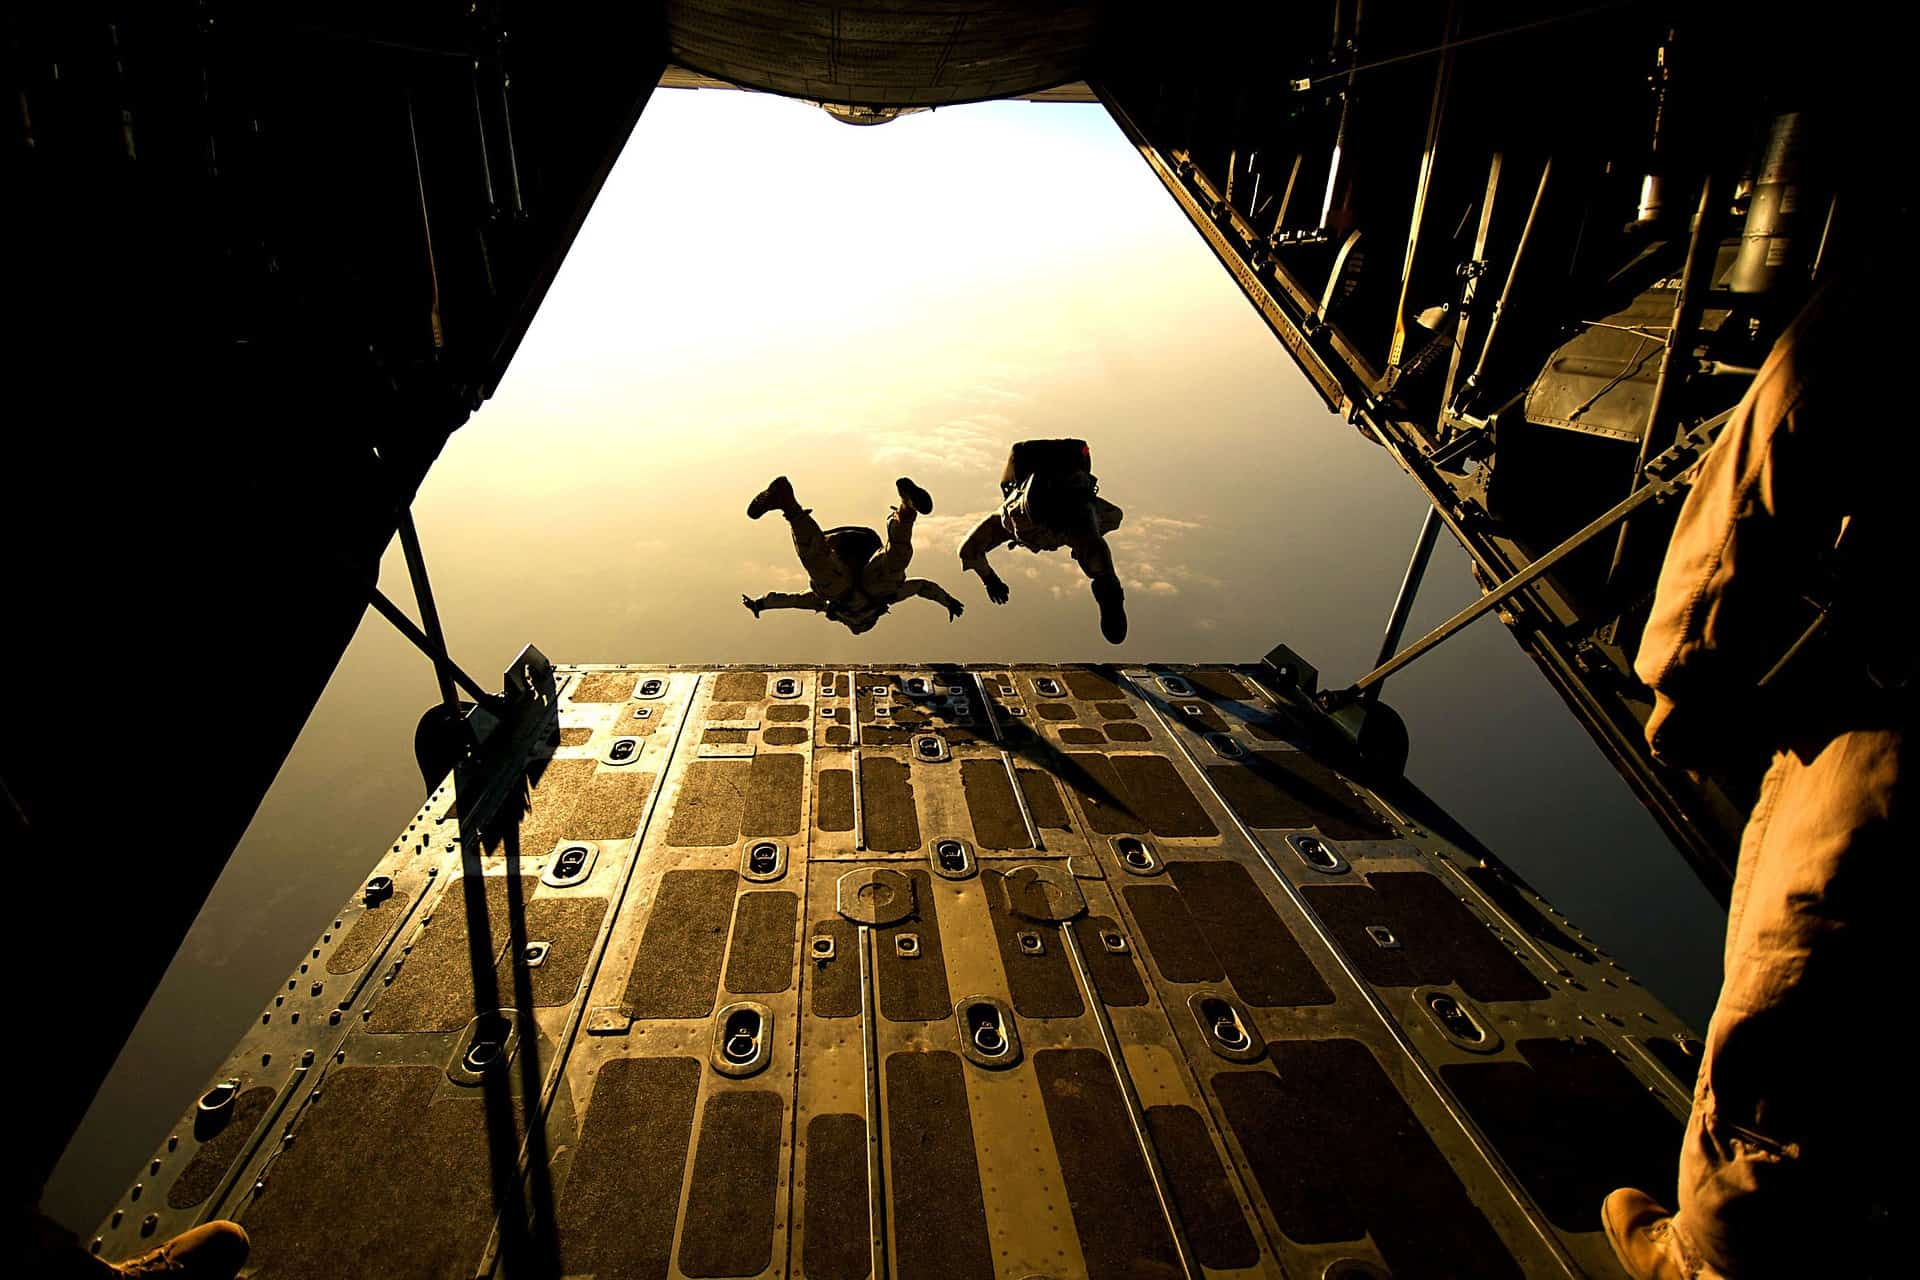 - Military Logistics and Supply Chain Interruption Mitigation Strategies - Guest Blog 2 of 2